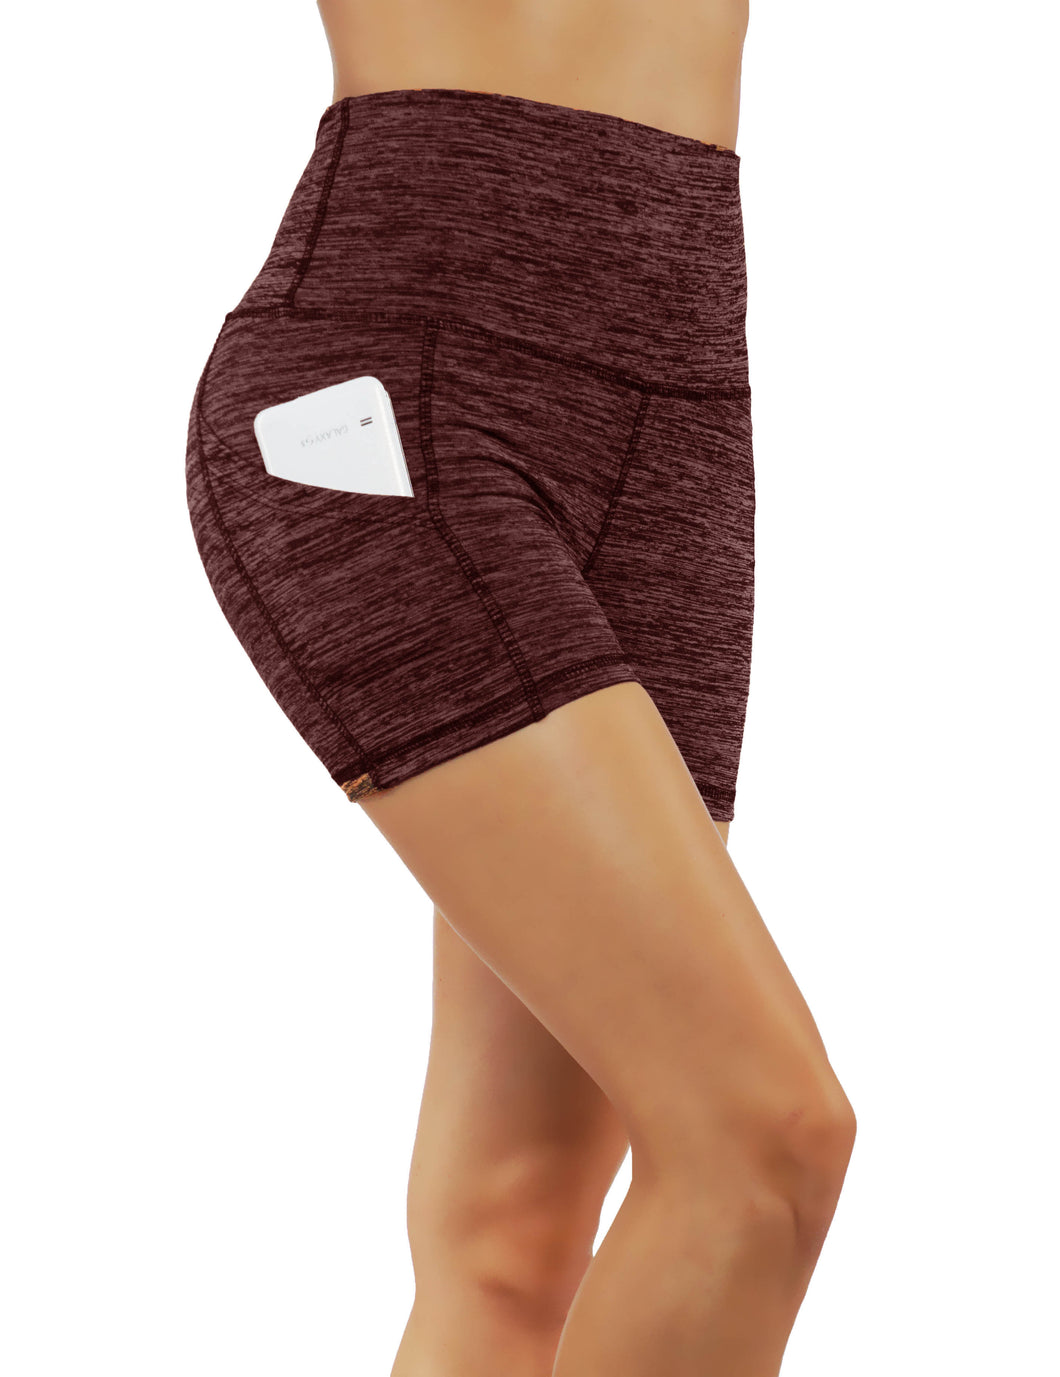 Light Material High Elastic Waistband Yoga Shorts With Deep Side Pockets